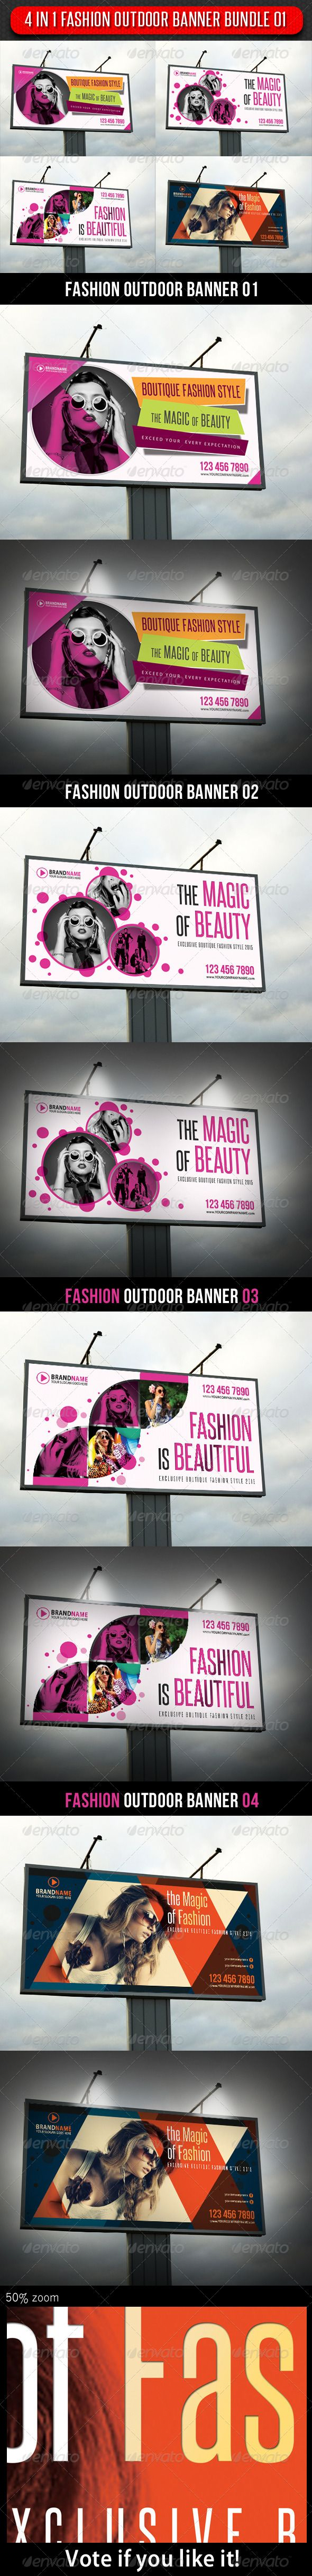 4 in 1 Fashion Outdoor Banner Bundle 01  #GraphicRiver         4 Highly editable PSD Outdoor Banners, very easily customise to make it your own in seconds!  The Pack included:   4 PSD files  High Quality and Details  Easy to Customise  CMYK, 150 dpi  120×60 in  Print: 122×62 in  Bleed 1 inch (all side)  18300×9300 px  Print Ready  Smart object placeholder  Editable shape Logo included  Preview Image not included  Read me file (included instrucions)   Fonts…